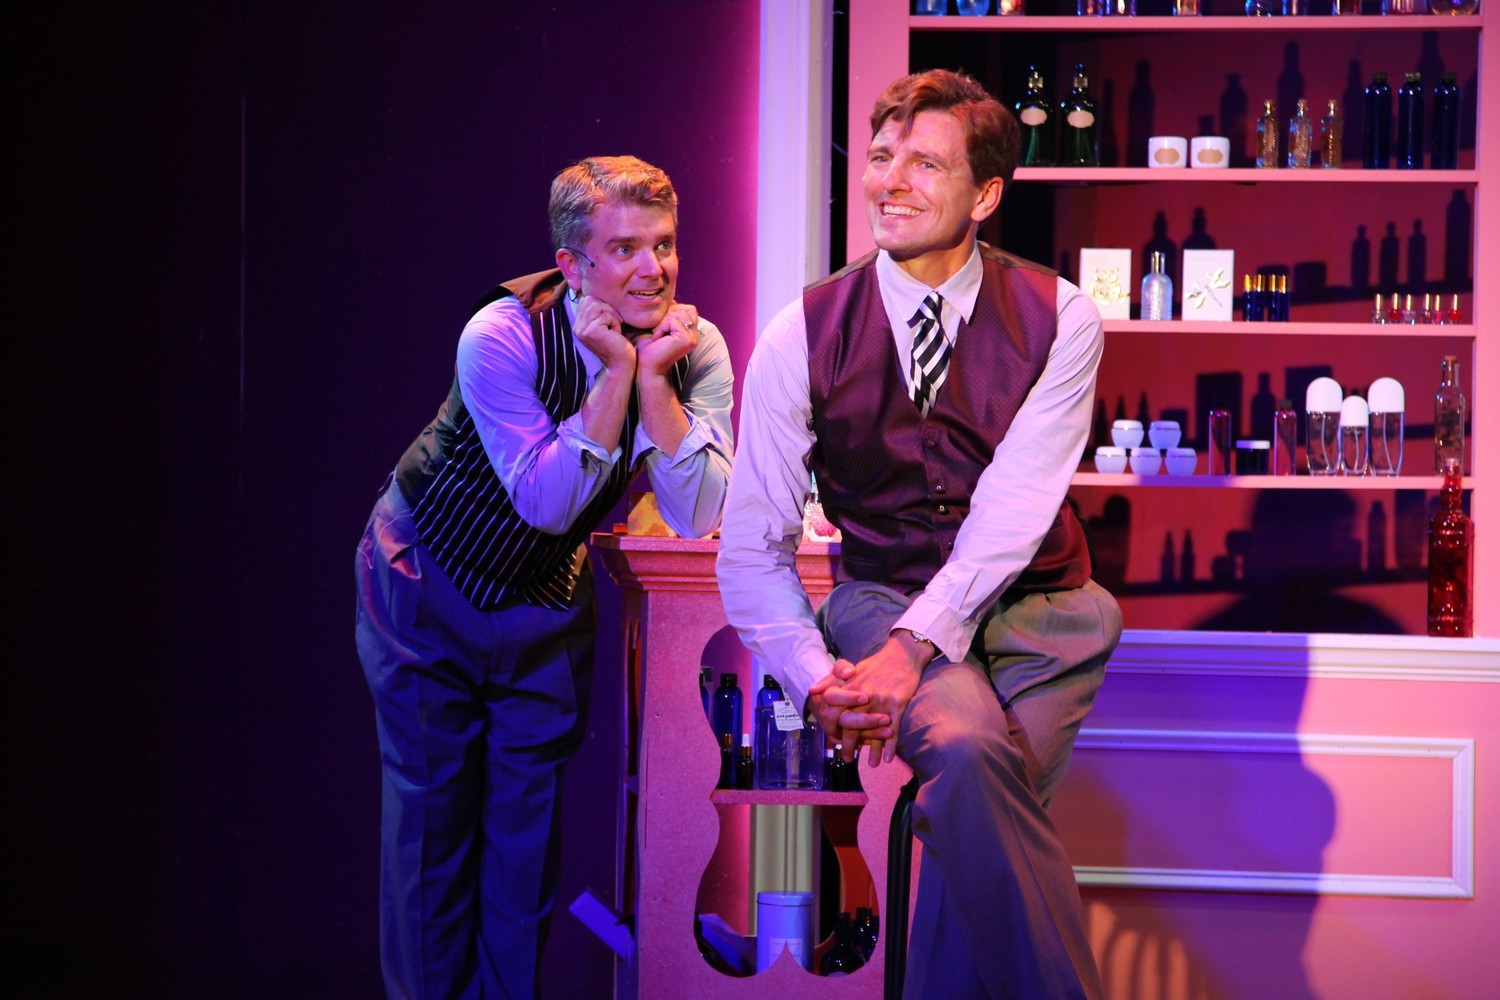 BWW Review: SHE LOVES ME at Gretna Theatre